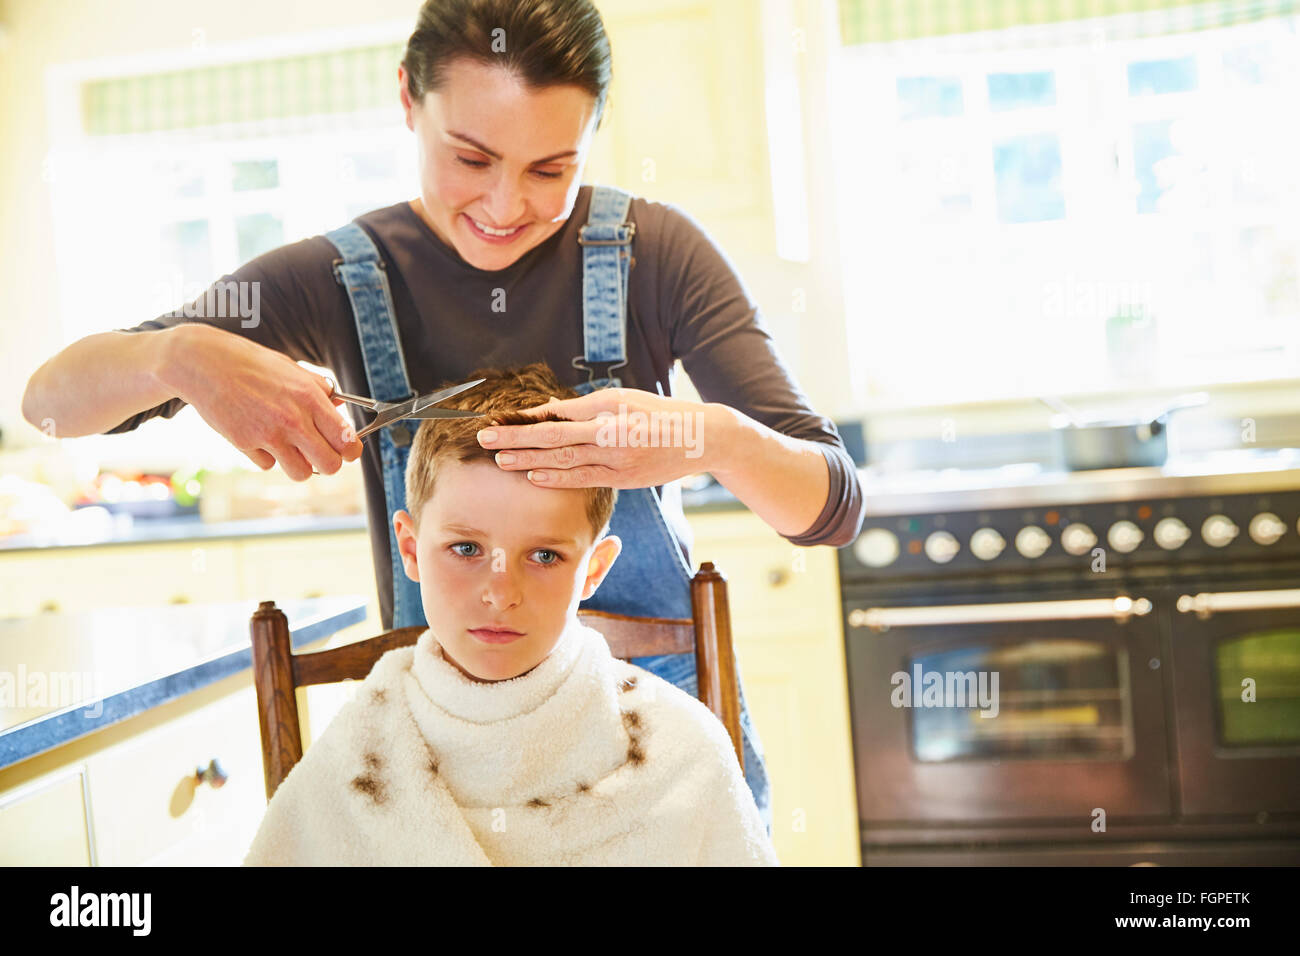 Unhappy boy getting haircut from mother in kitchen - Stock Image